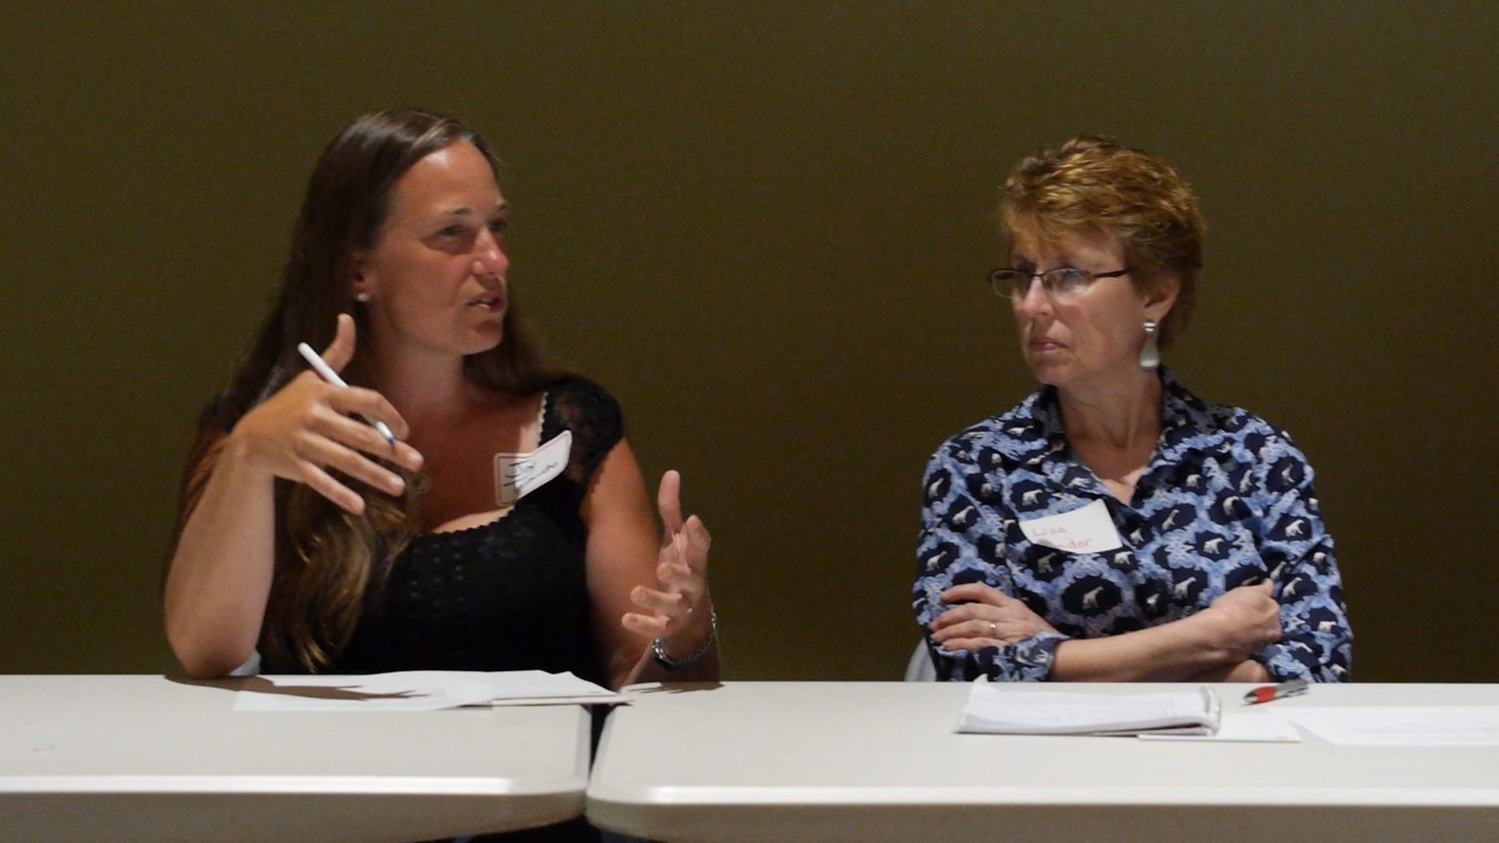 Farmers, Joy Taranto and Lisa Bender, participate on a panel of local food leaders.